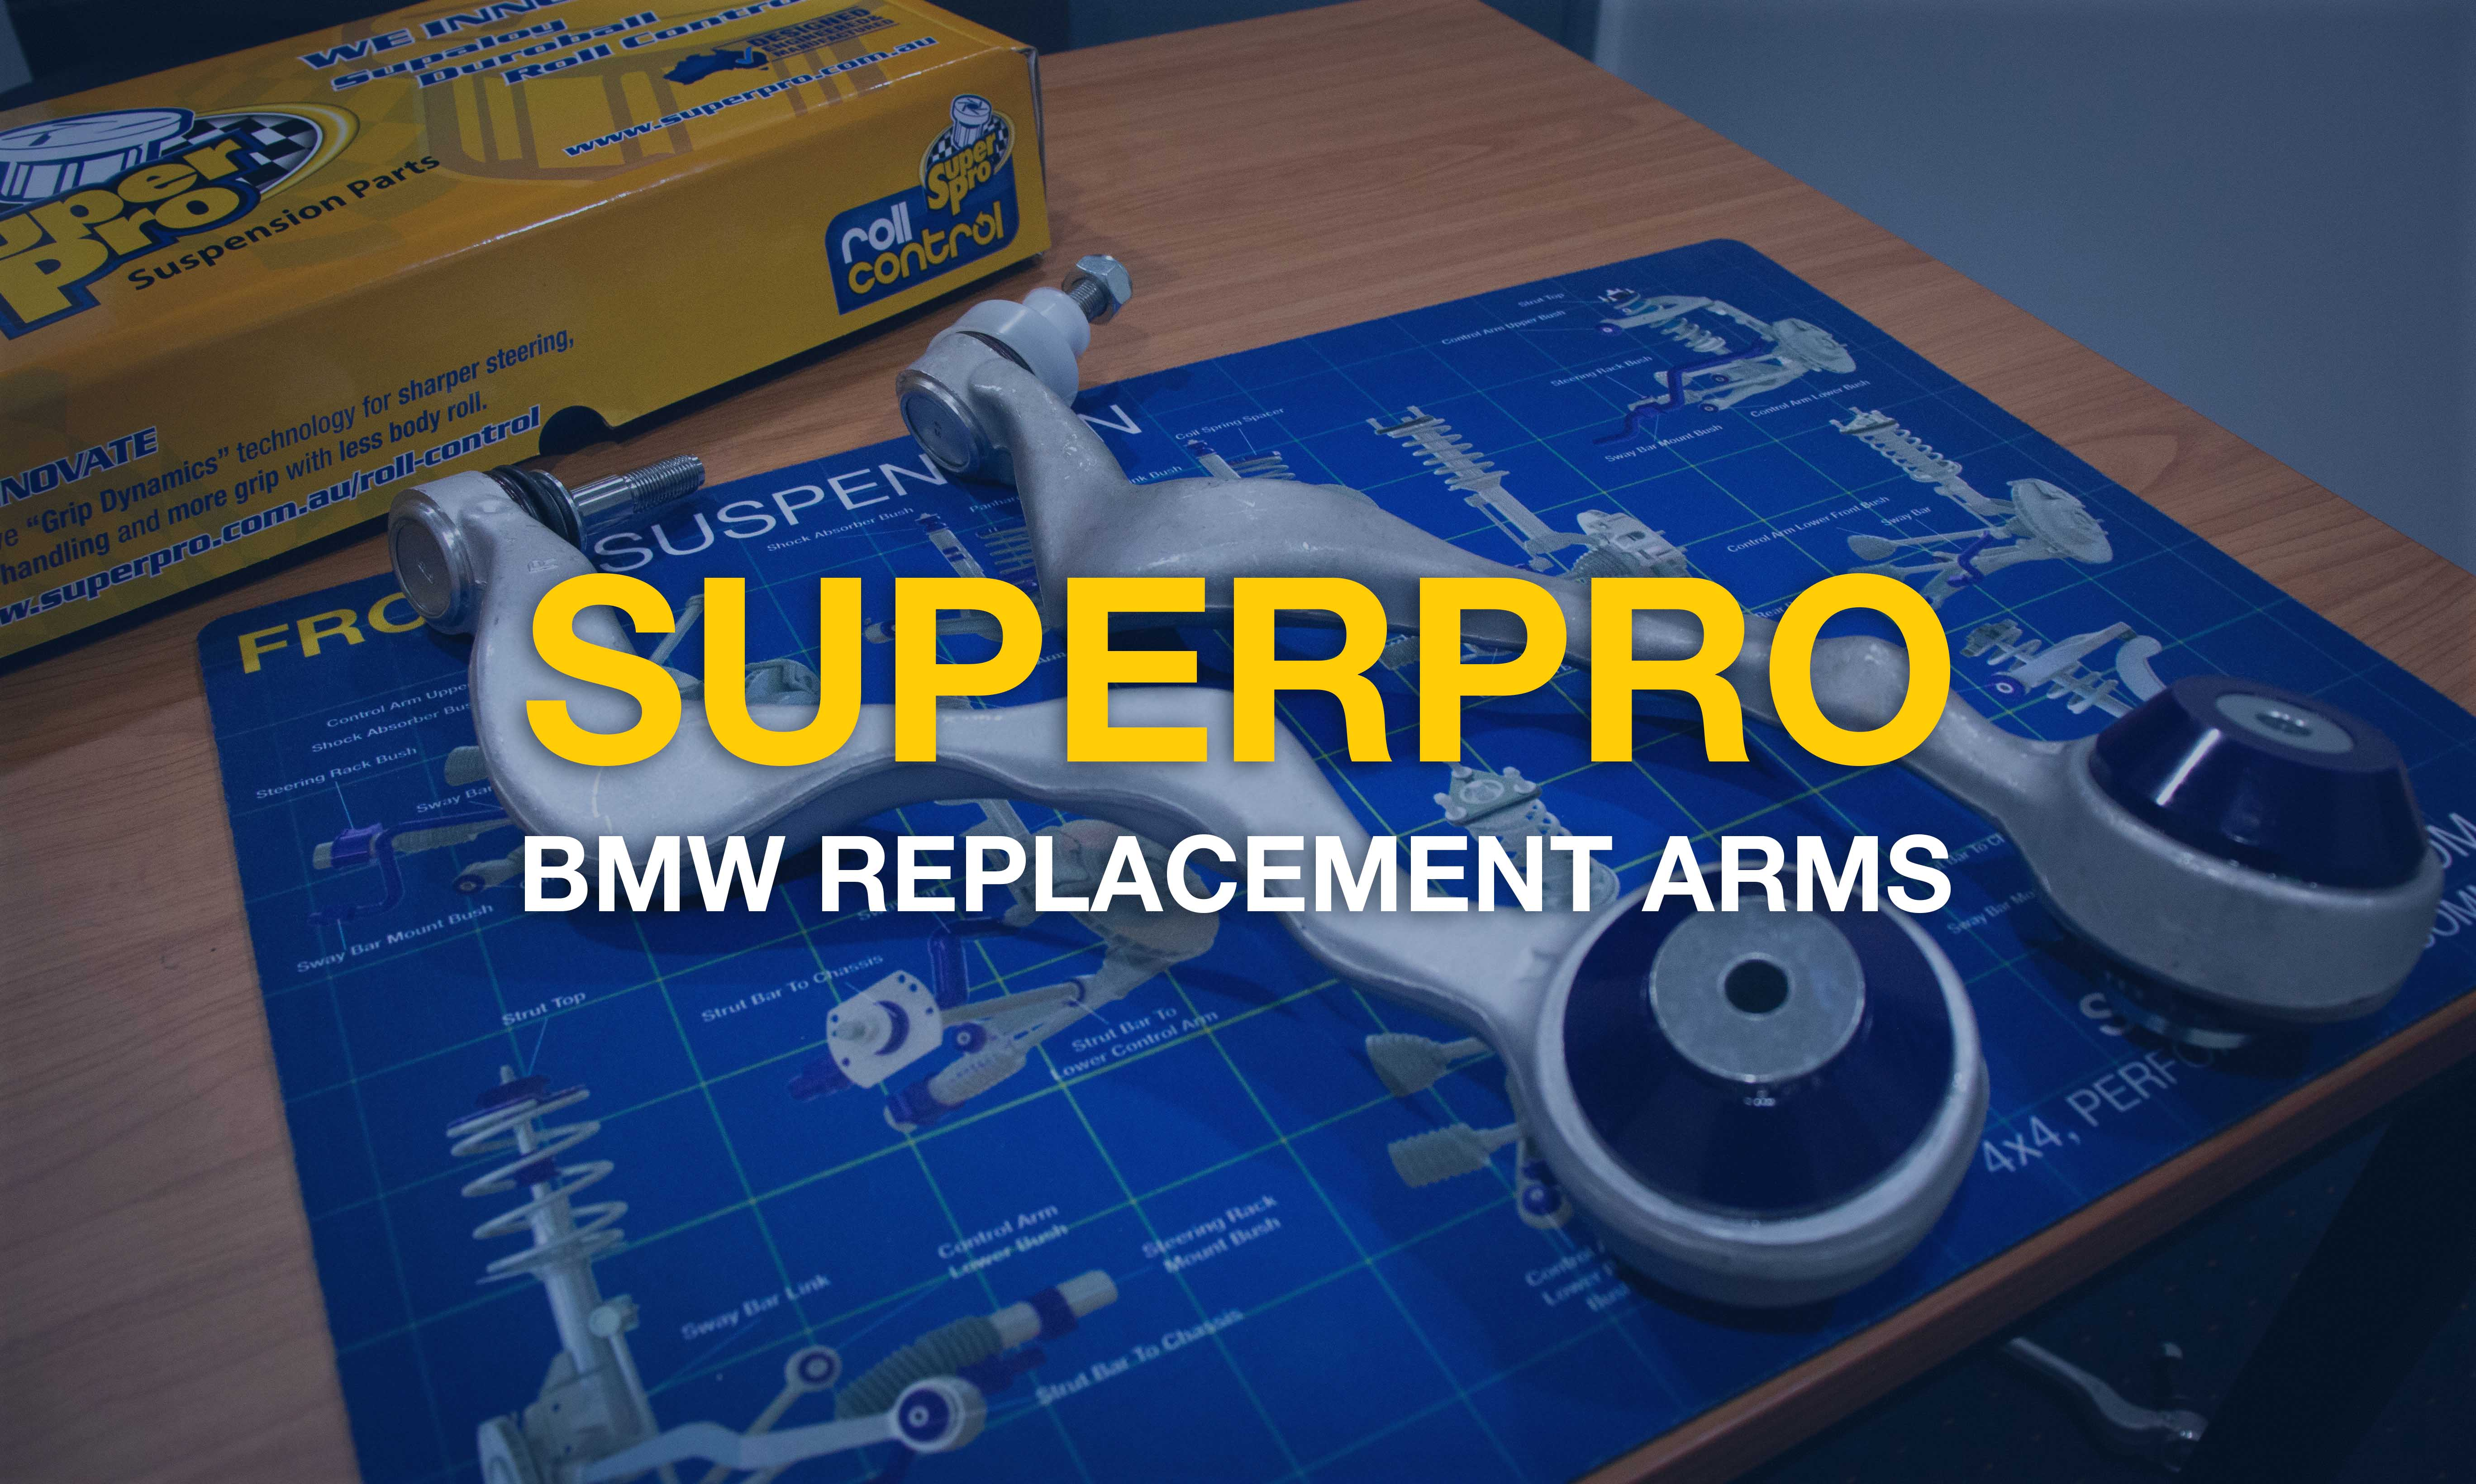 BMW Replacement Arms